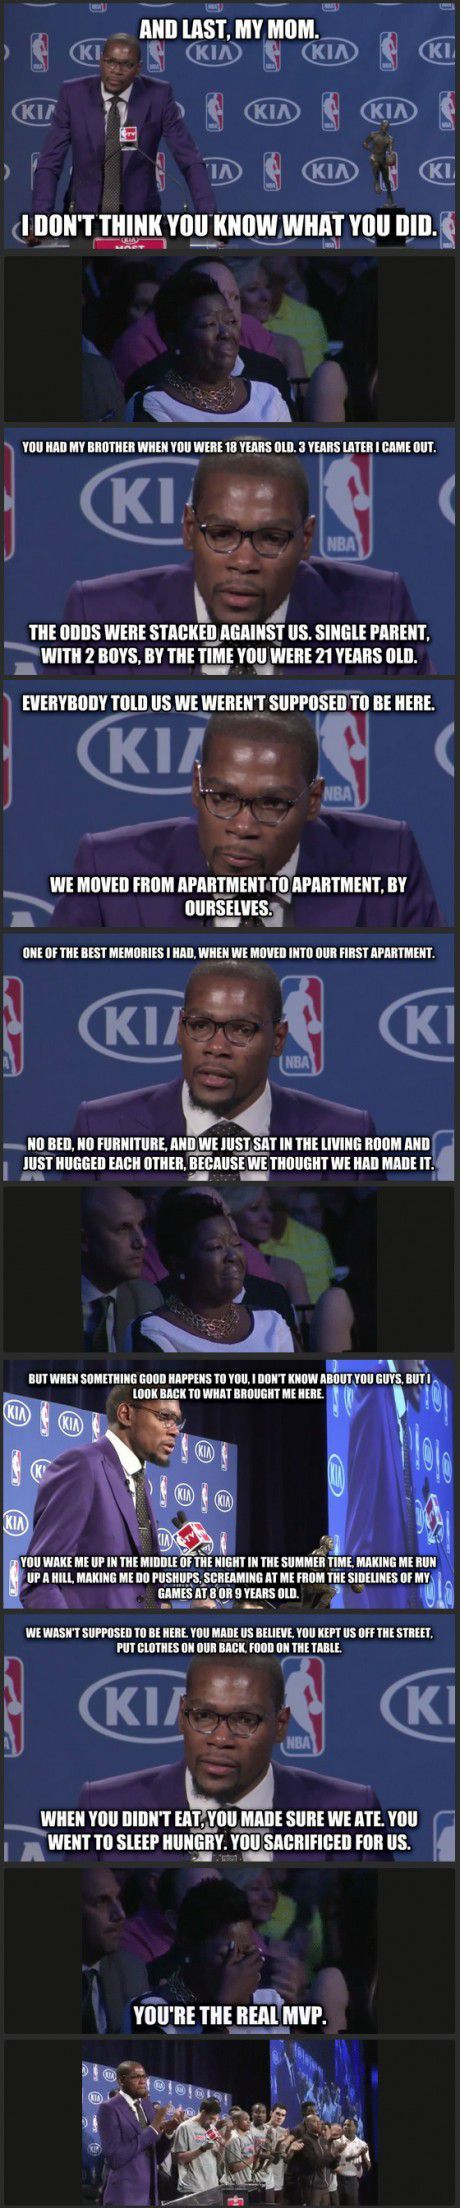 Kevin Durant talking about his mom during MVP speech.  // funny pictures - funny photos - funny images - funny pics - funny quotes - #lol #humor #funnypictures